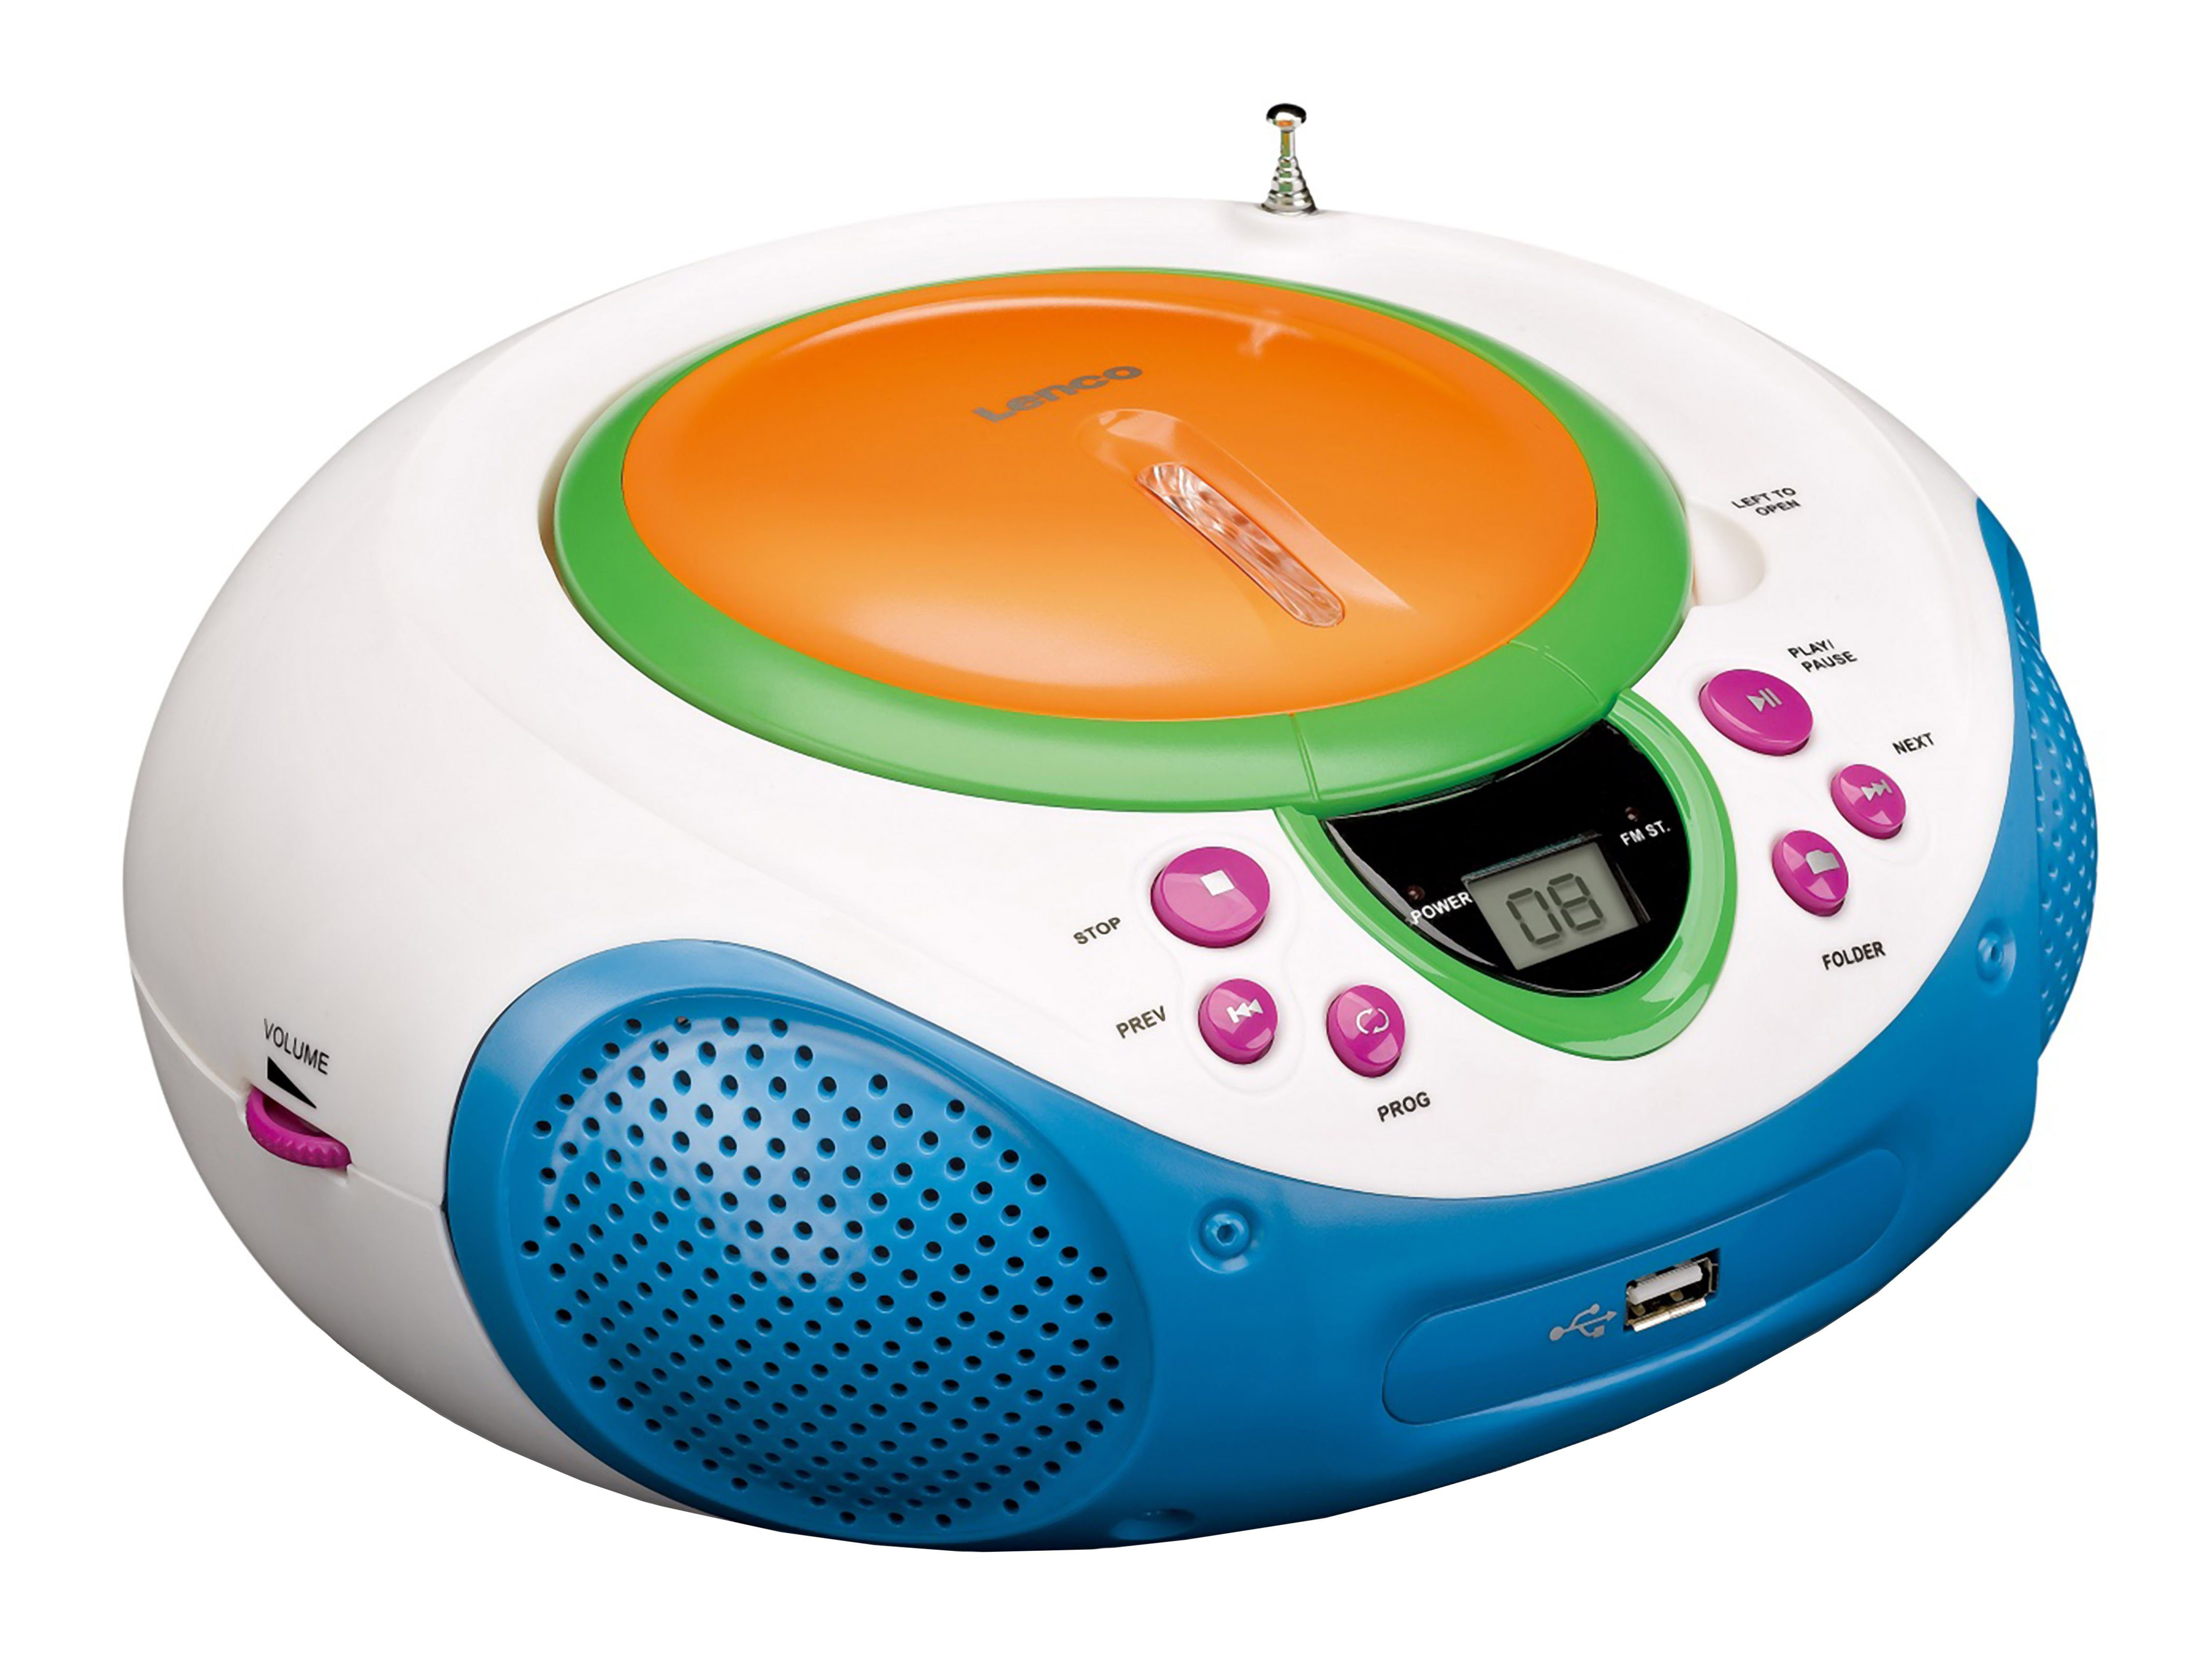 Lenco Kinder UKW-Radio mit CD/MP3 Player & USB-Anschluss »SCD-40 USB Kids«